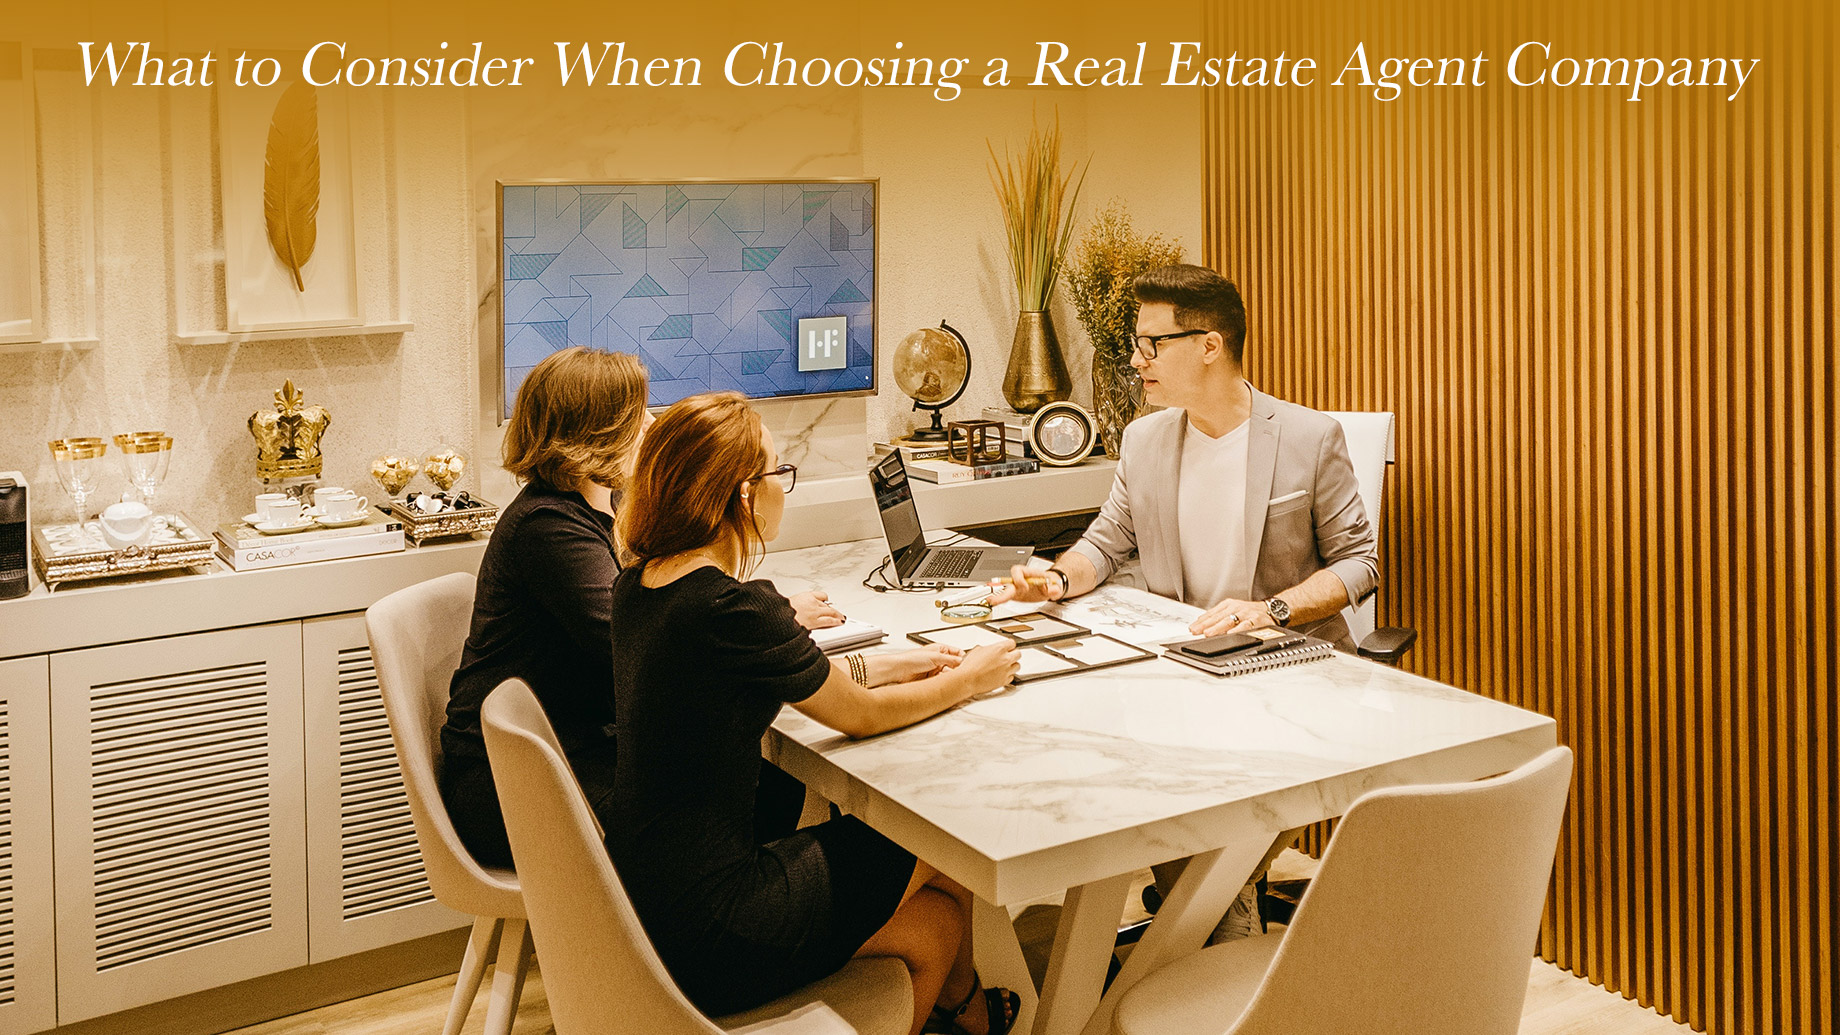 What to Consider When Choosing a Real Estate Agent Company